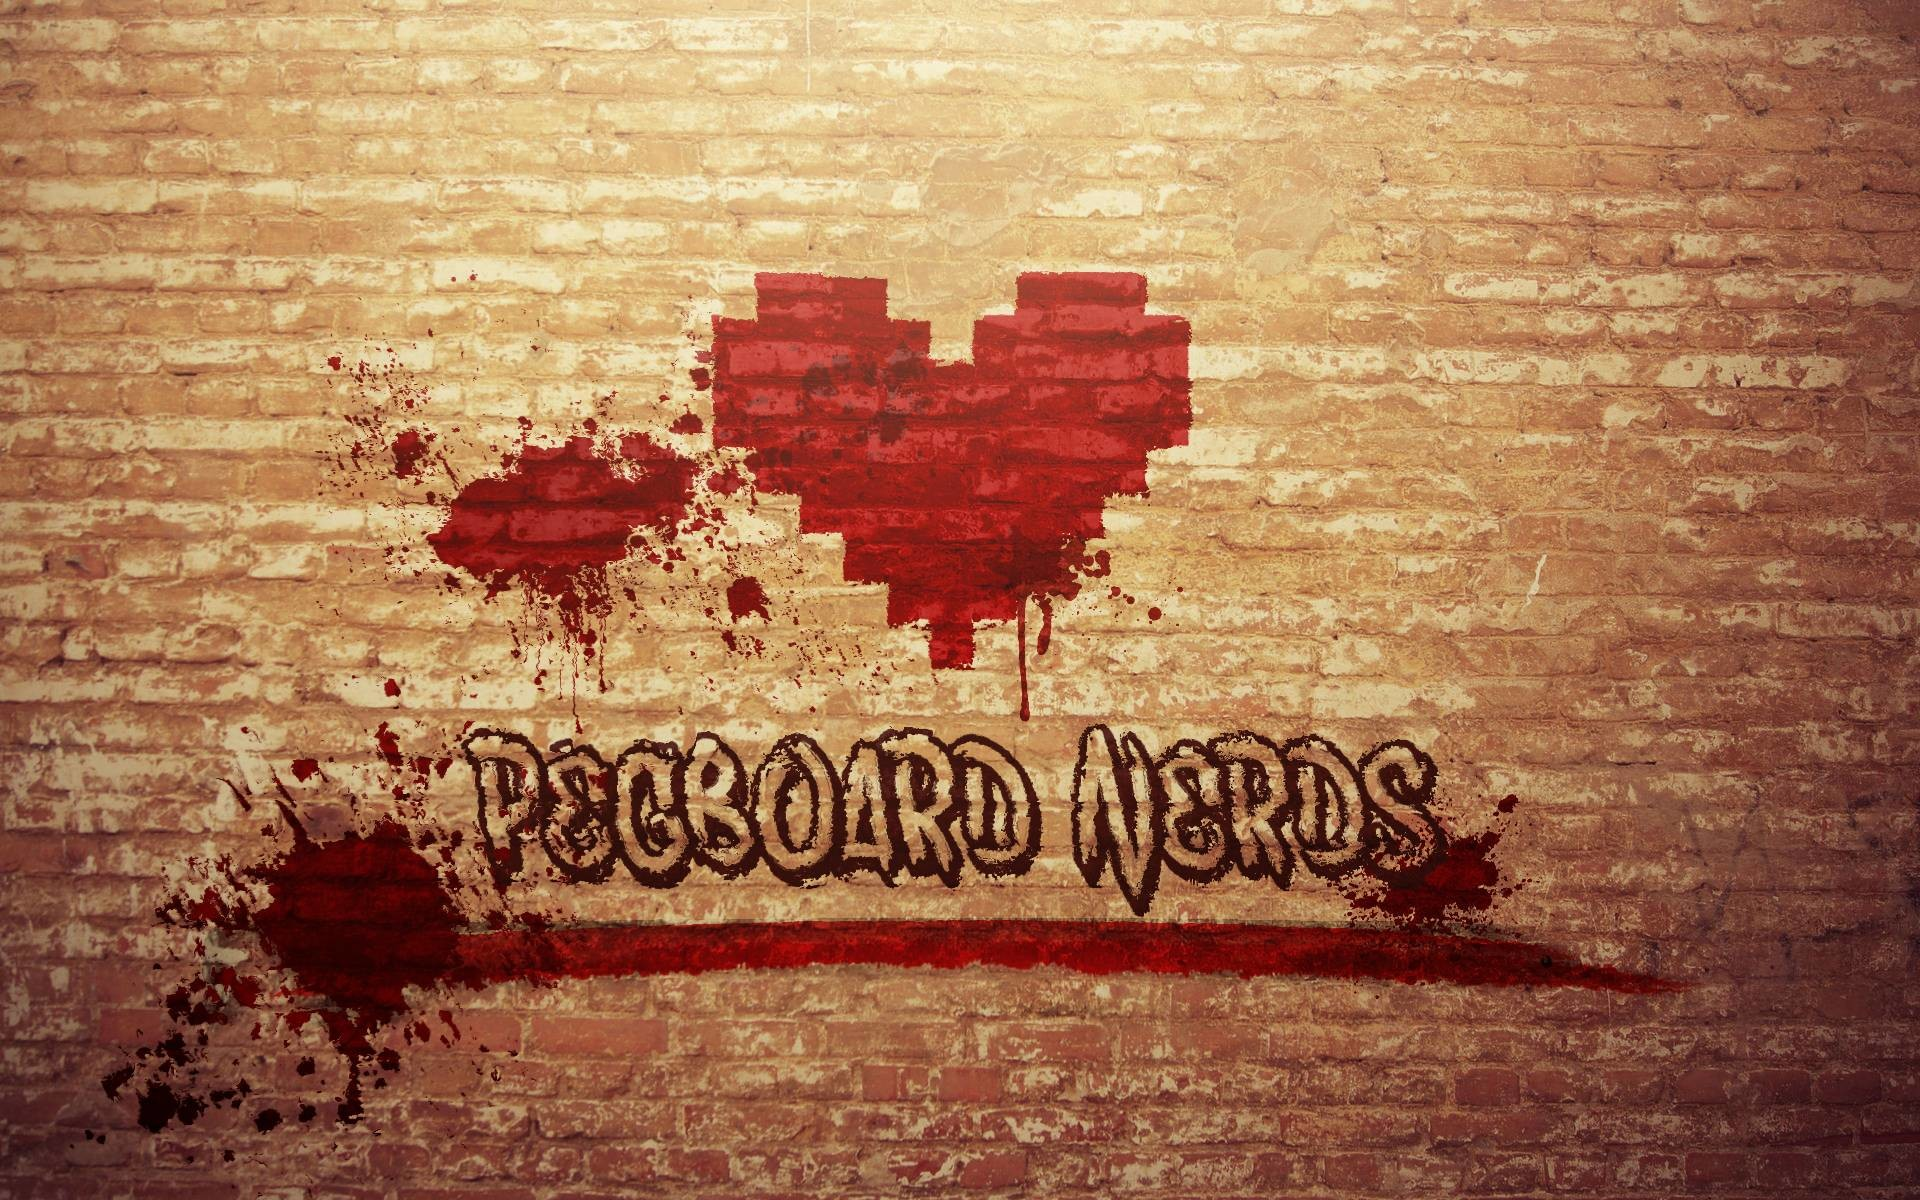 Pegboard Nerds Wallpapers